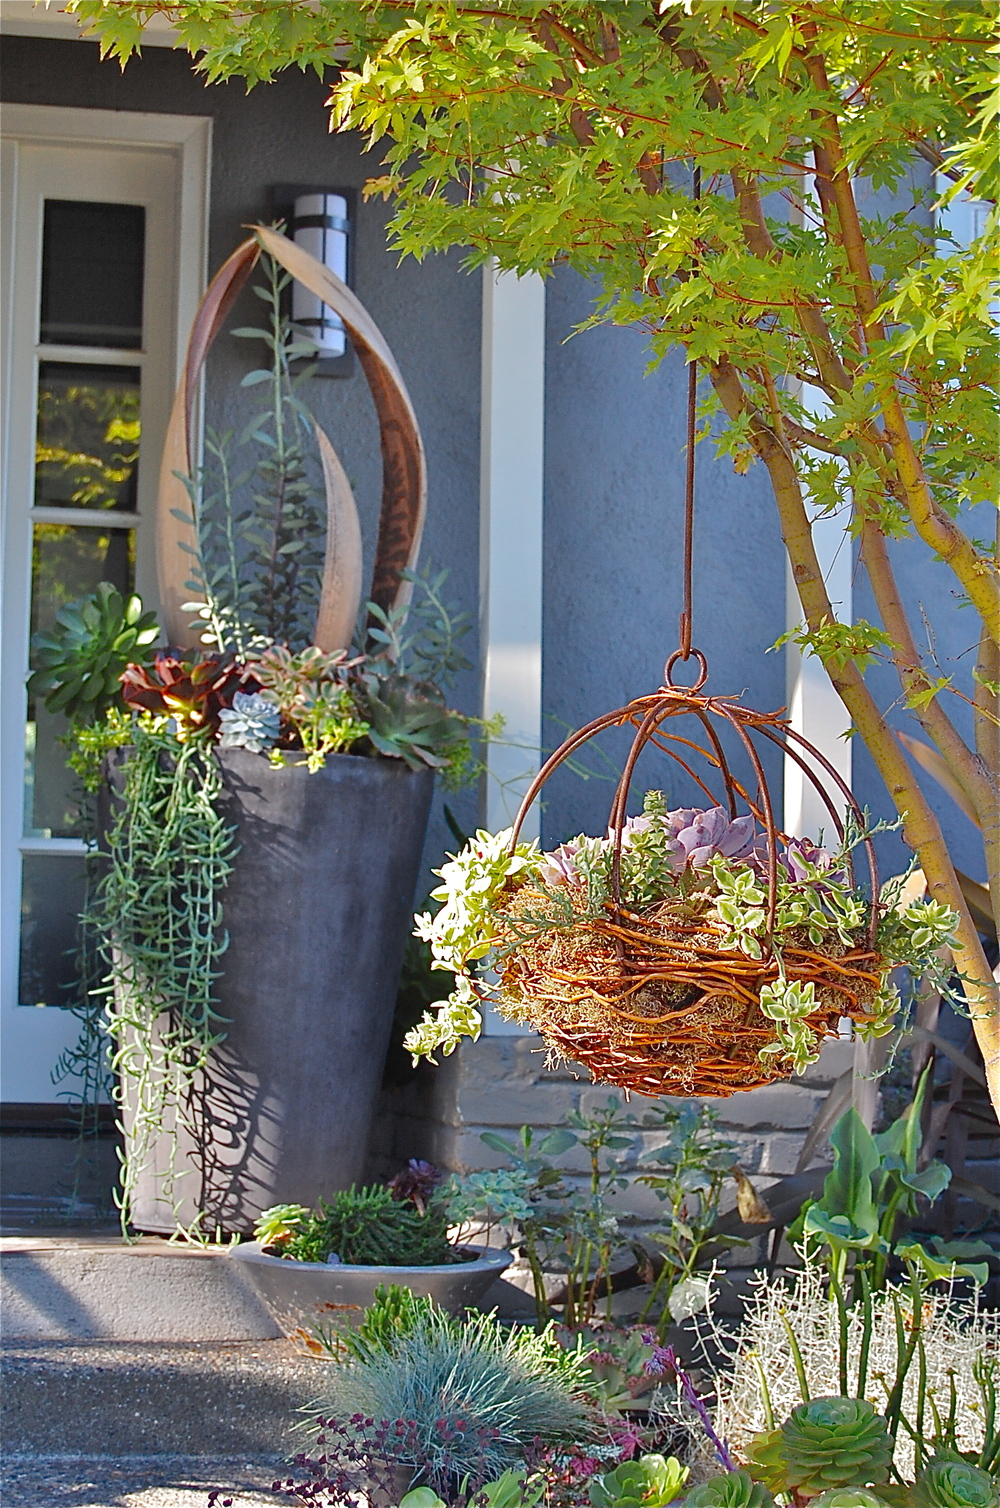 CUSTOM OUTDOOR PLANTER AND HANGING METAL ORB IN CORTE MADERA, CA